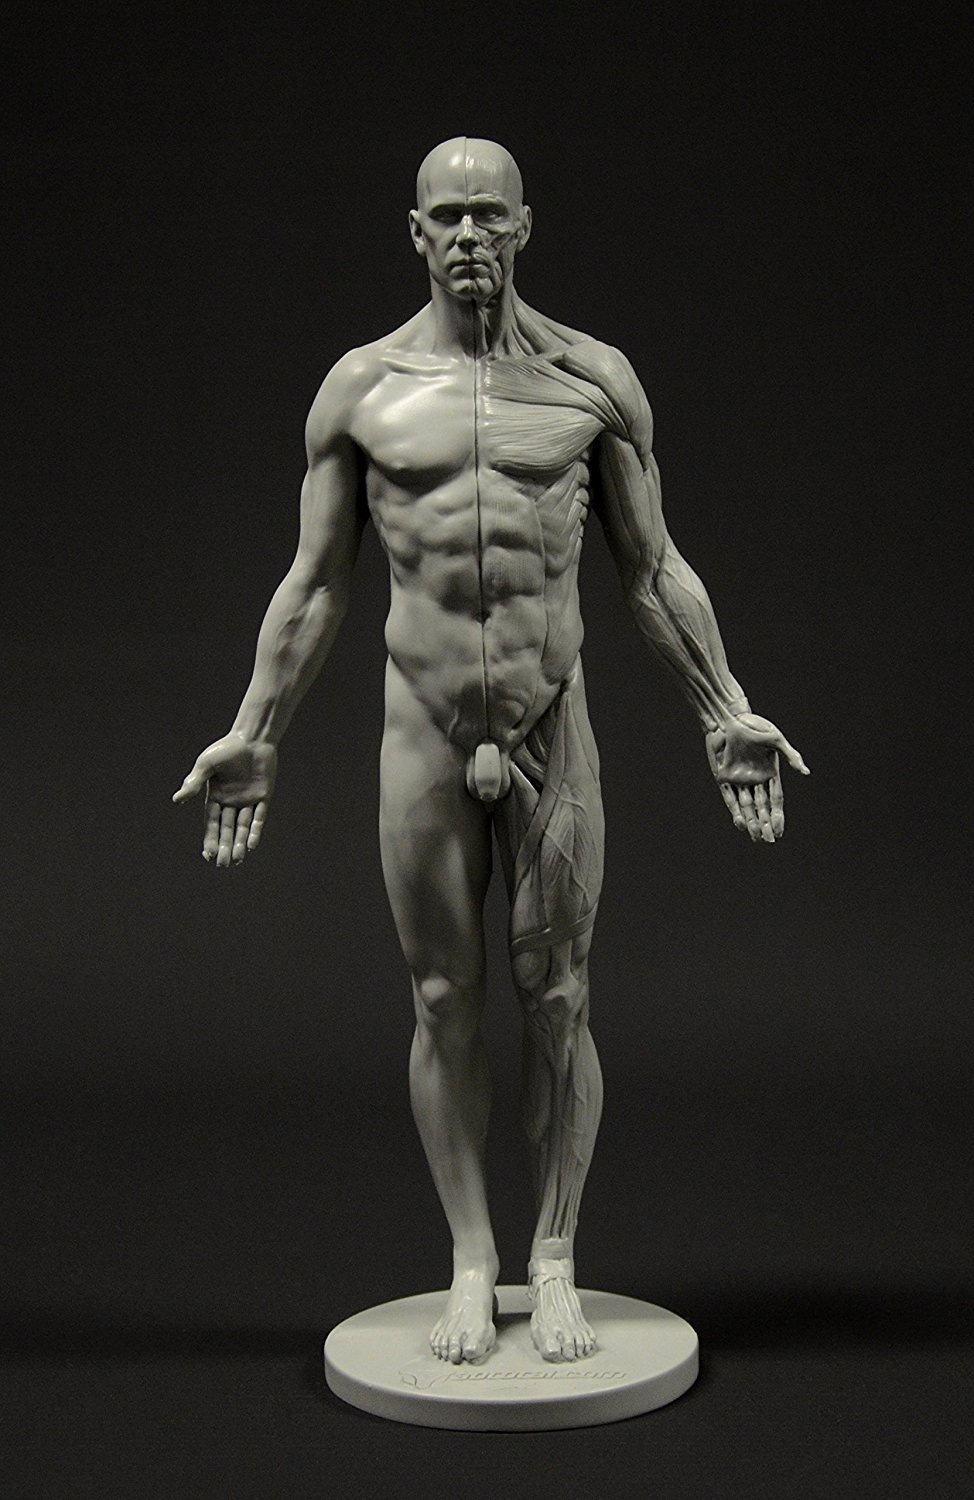 Amazon.com: Male Anatomy Figure: 11-inch Anatomical Reference for ...